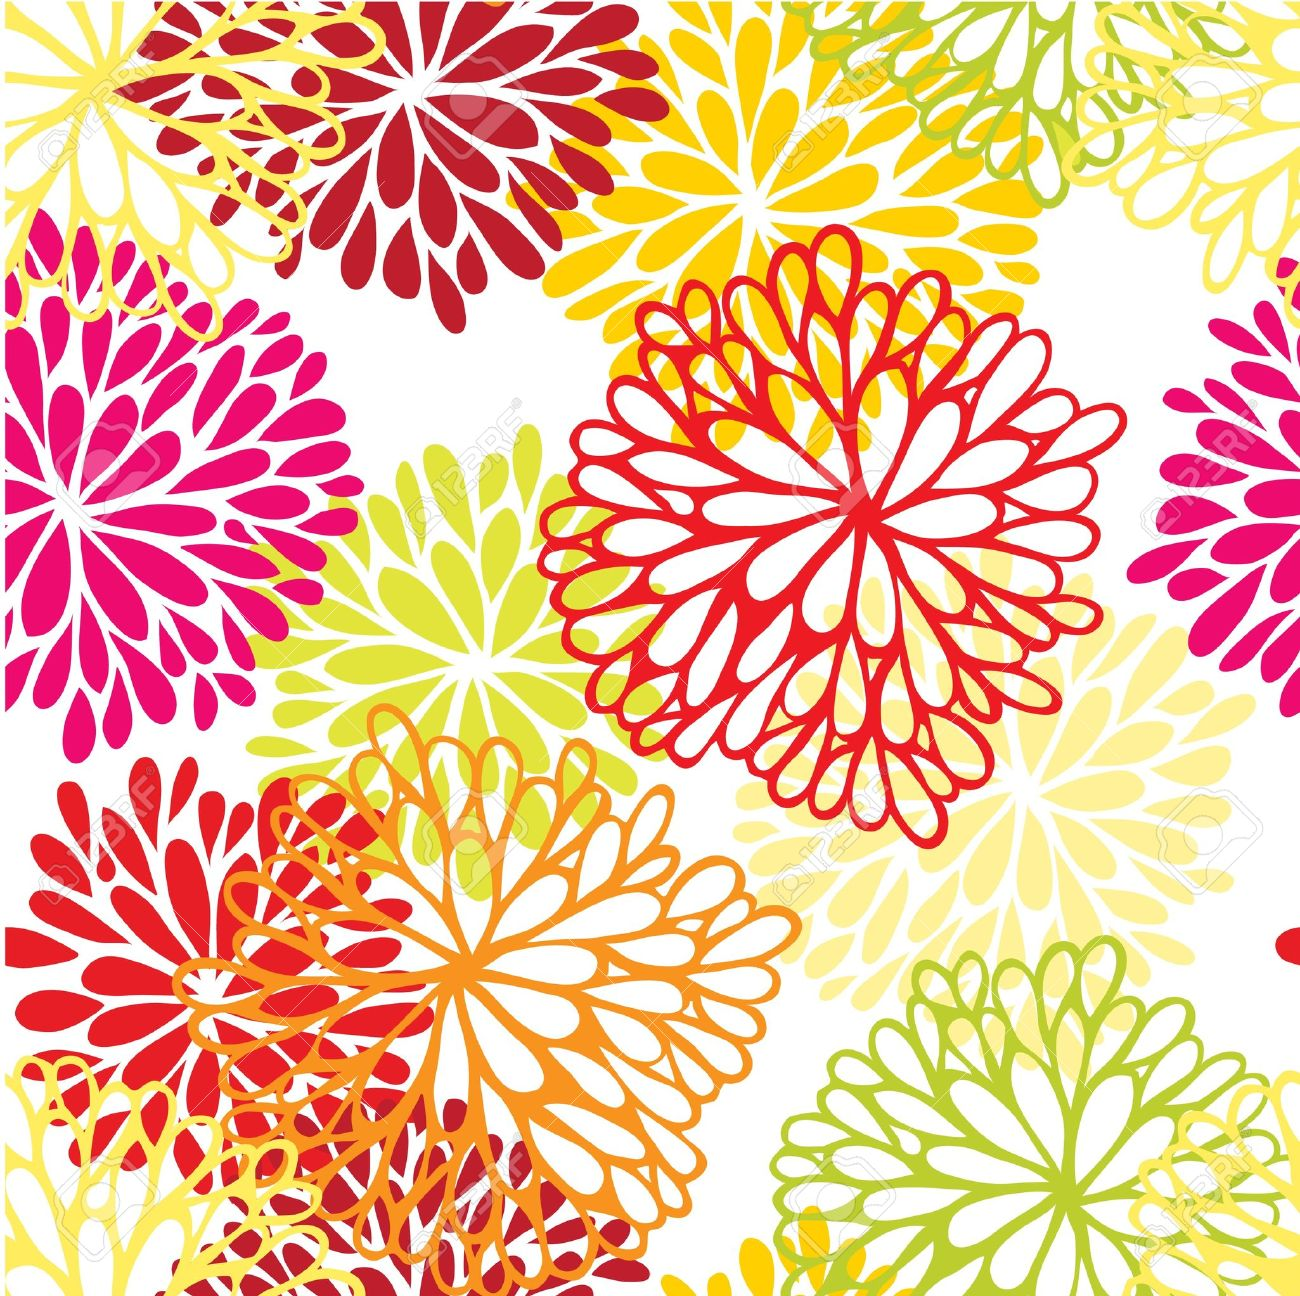 Pink floral seamless vector background floral hrysanthemum seamless - Floral Seamless Ornament With Chrysanthemum Stock Vector 11651666